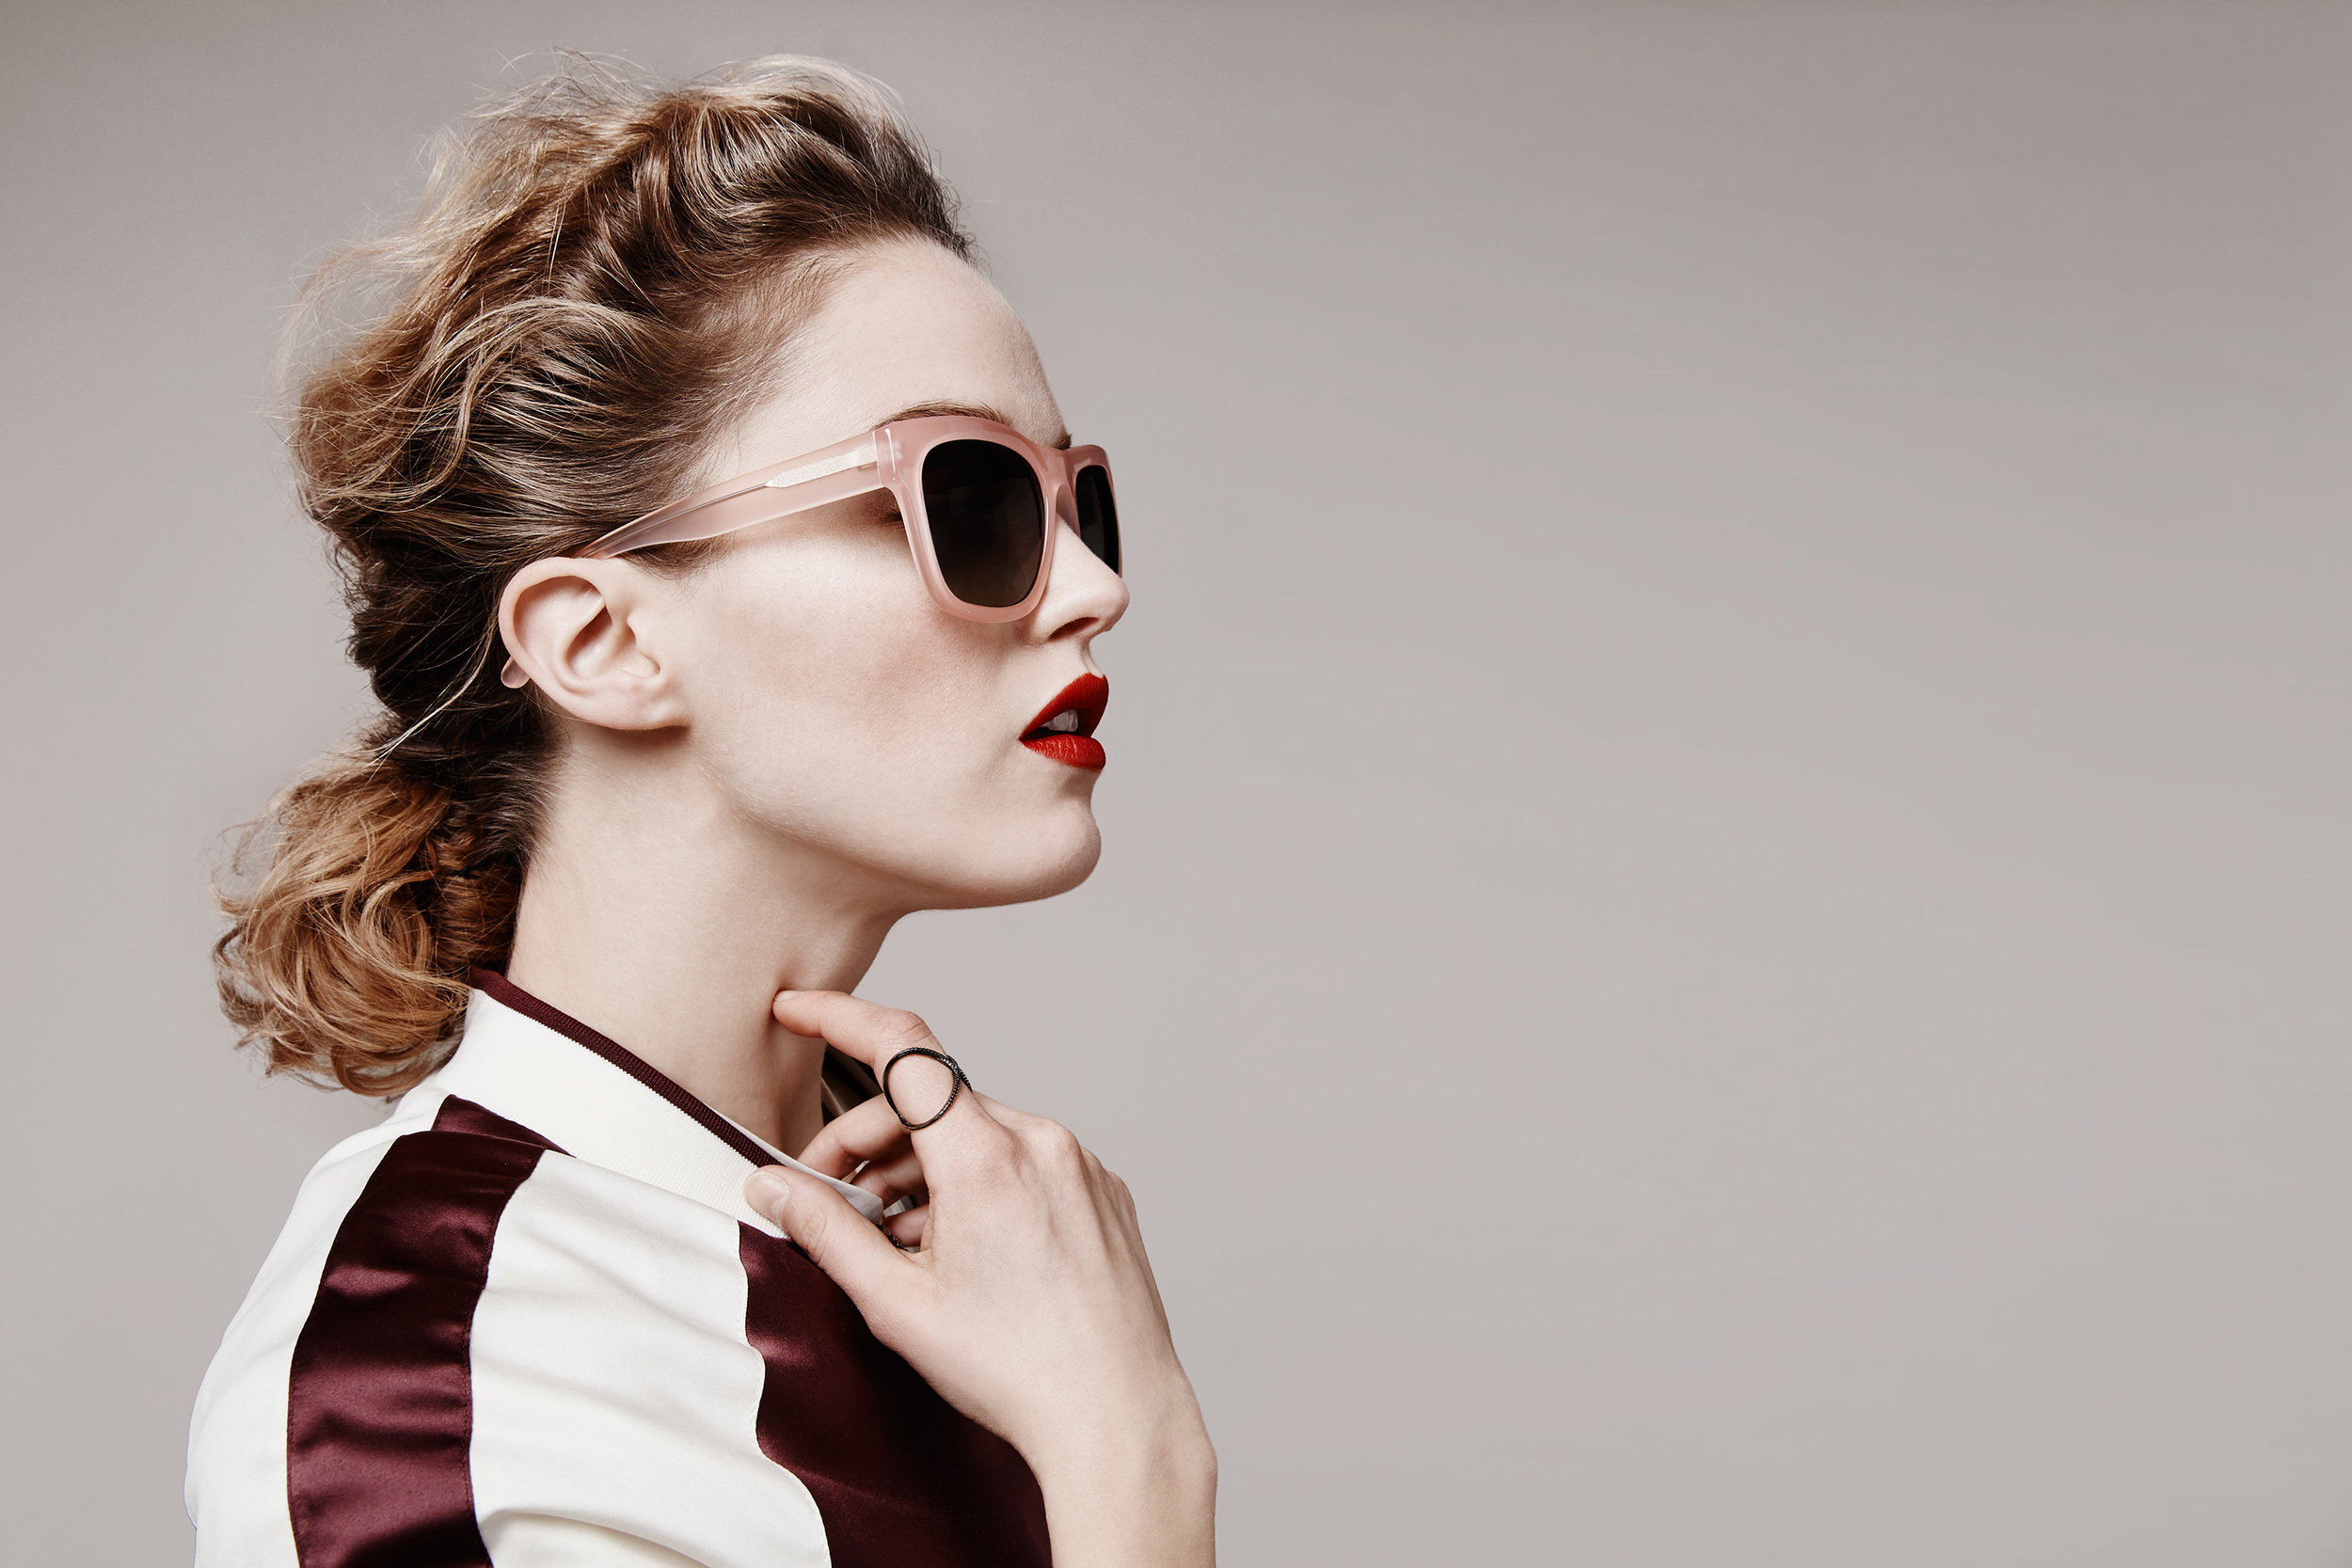 Philip_Lim_Sunglasses_WACC_1133204618_VALENTINES_DAY_EDITORIAL_CAPTURE_028.jpg